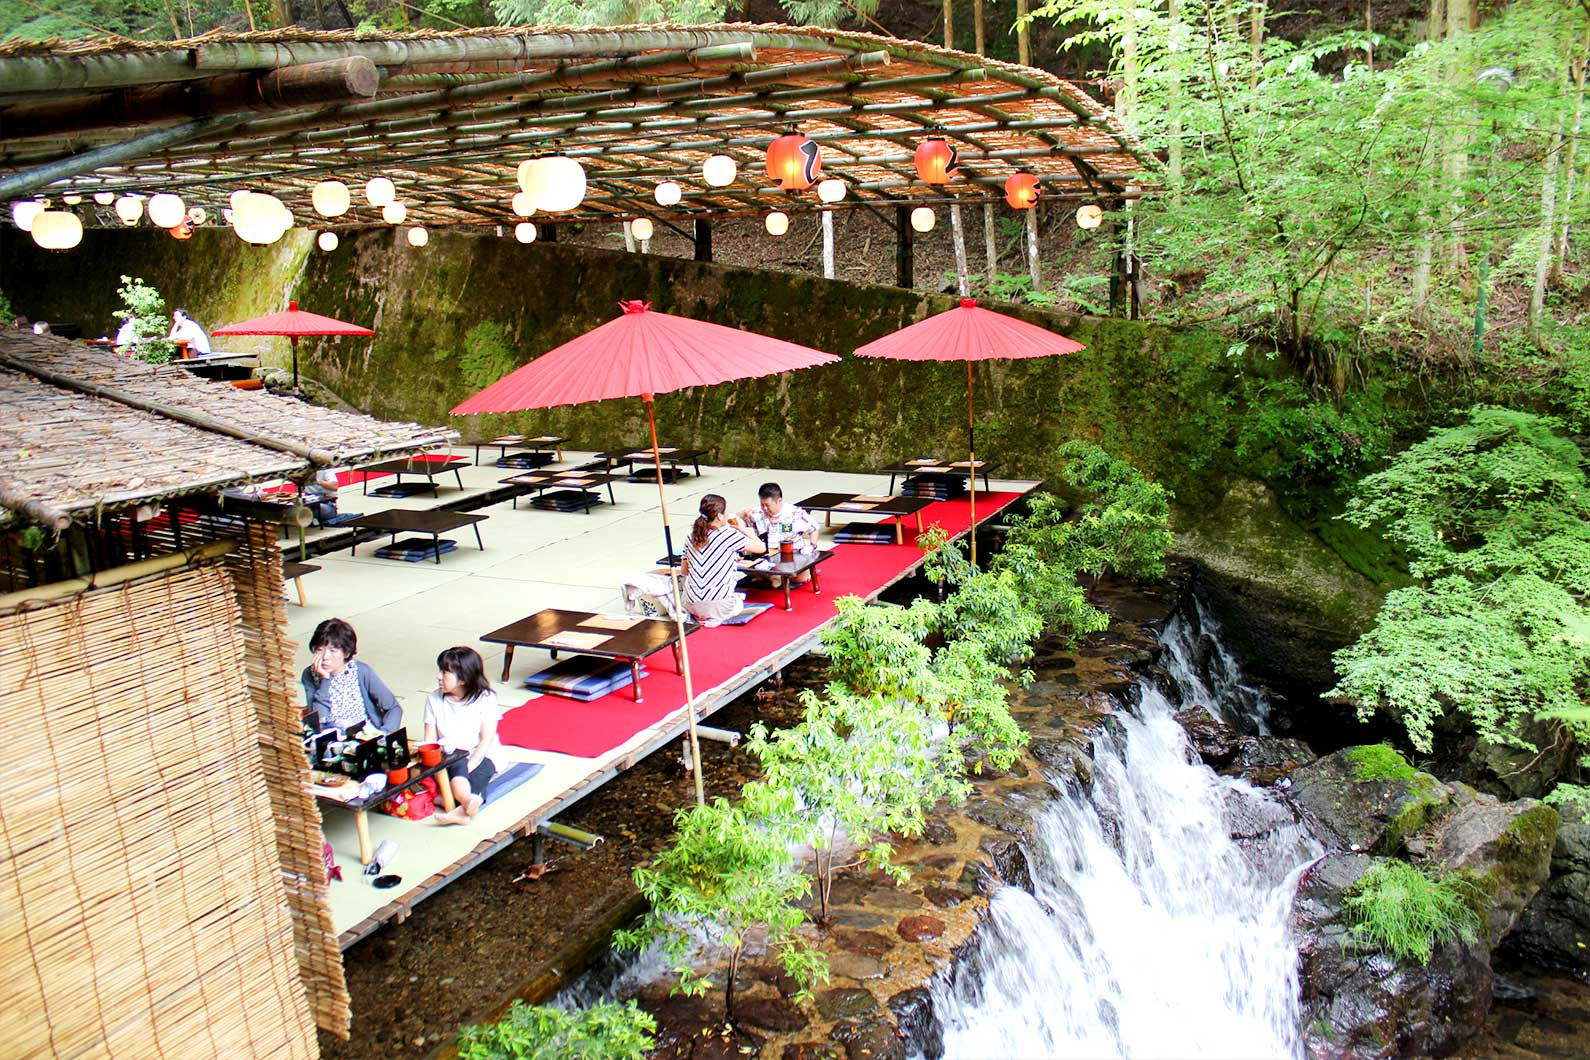 Kawadoko Restaurant Hirobun in Kibune Dine Atop a Waterfall at These Kawadoko Restaurants Hidden in Kyotos Mountains